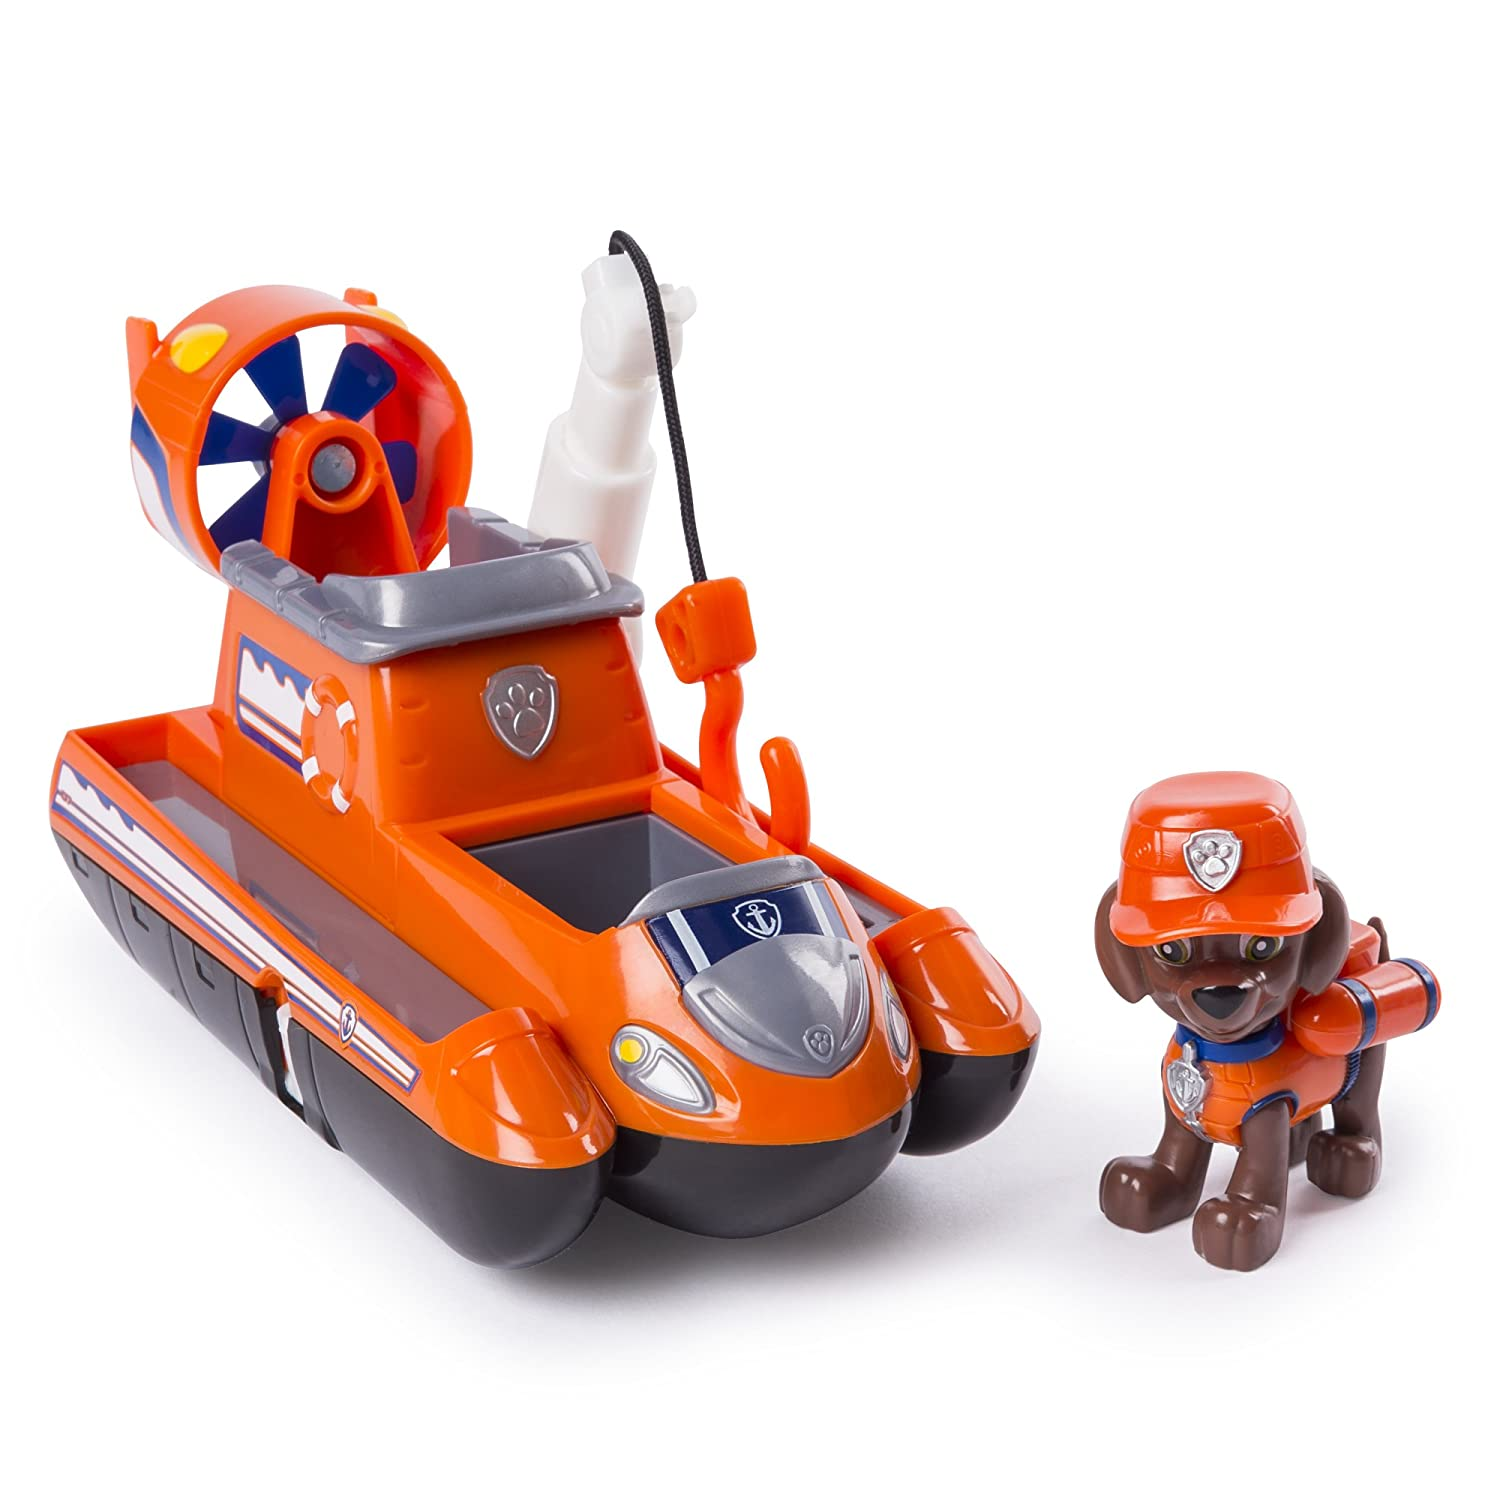 PAW Patrol Ultimate Rescue — Zuma's Ultimate Rescue Hovercraft with Moving Propellers and Rescue Hook, for Ages 3 and Up PAW Patrol Ultimate Rescue - Zuma's Ultimate Rescue Hovercraft with Moving Propellers and Rescue Hook Spin Master